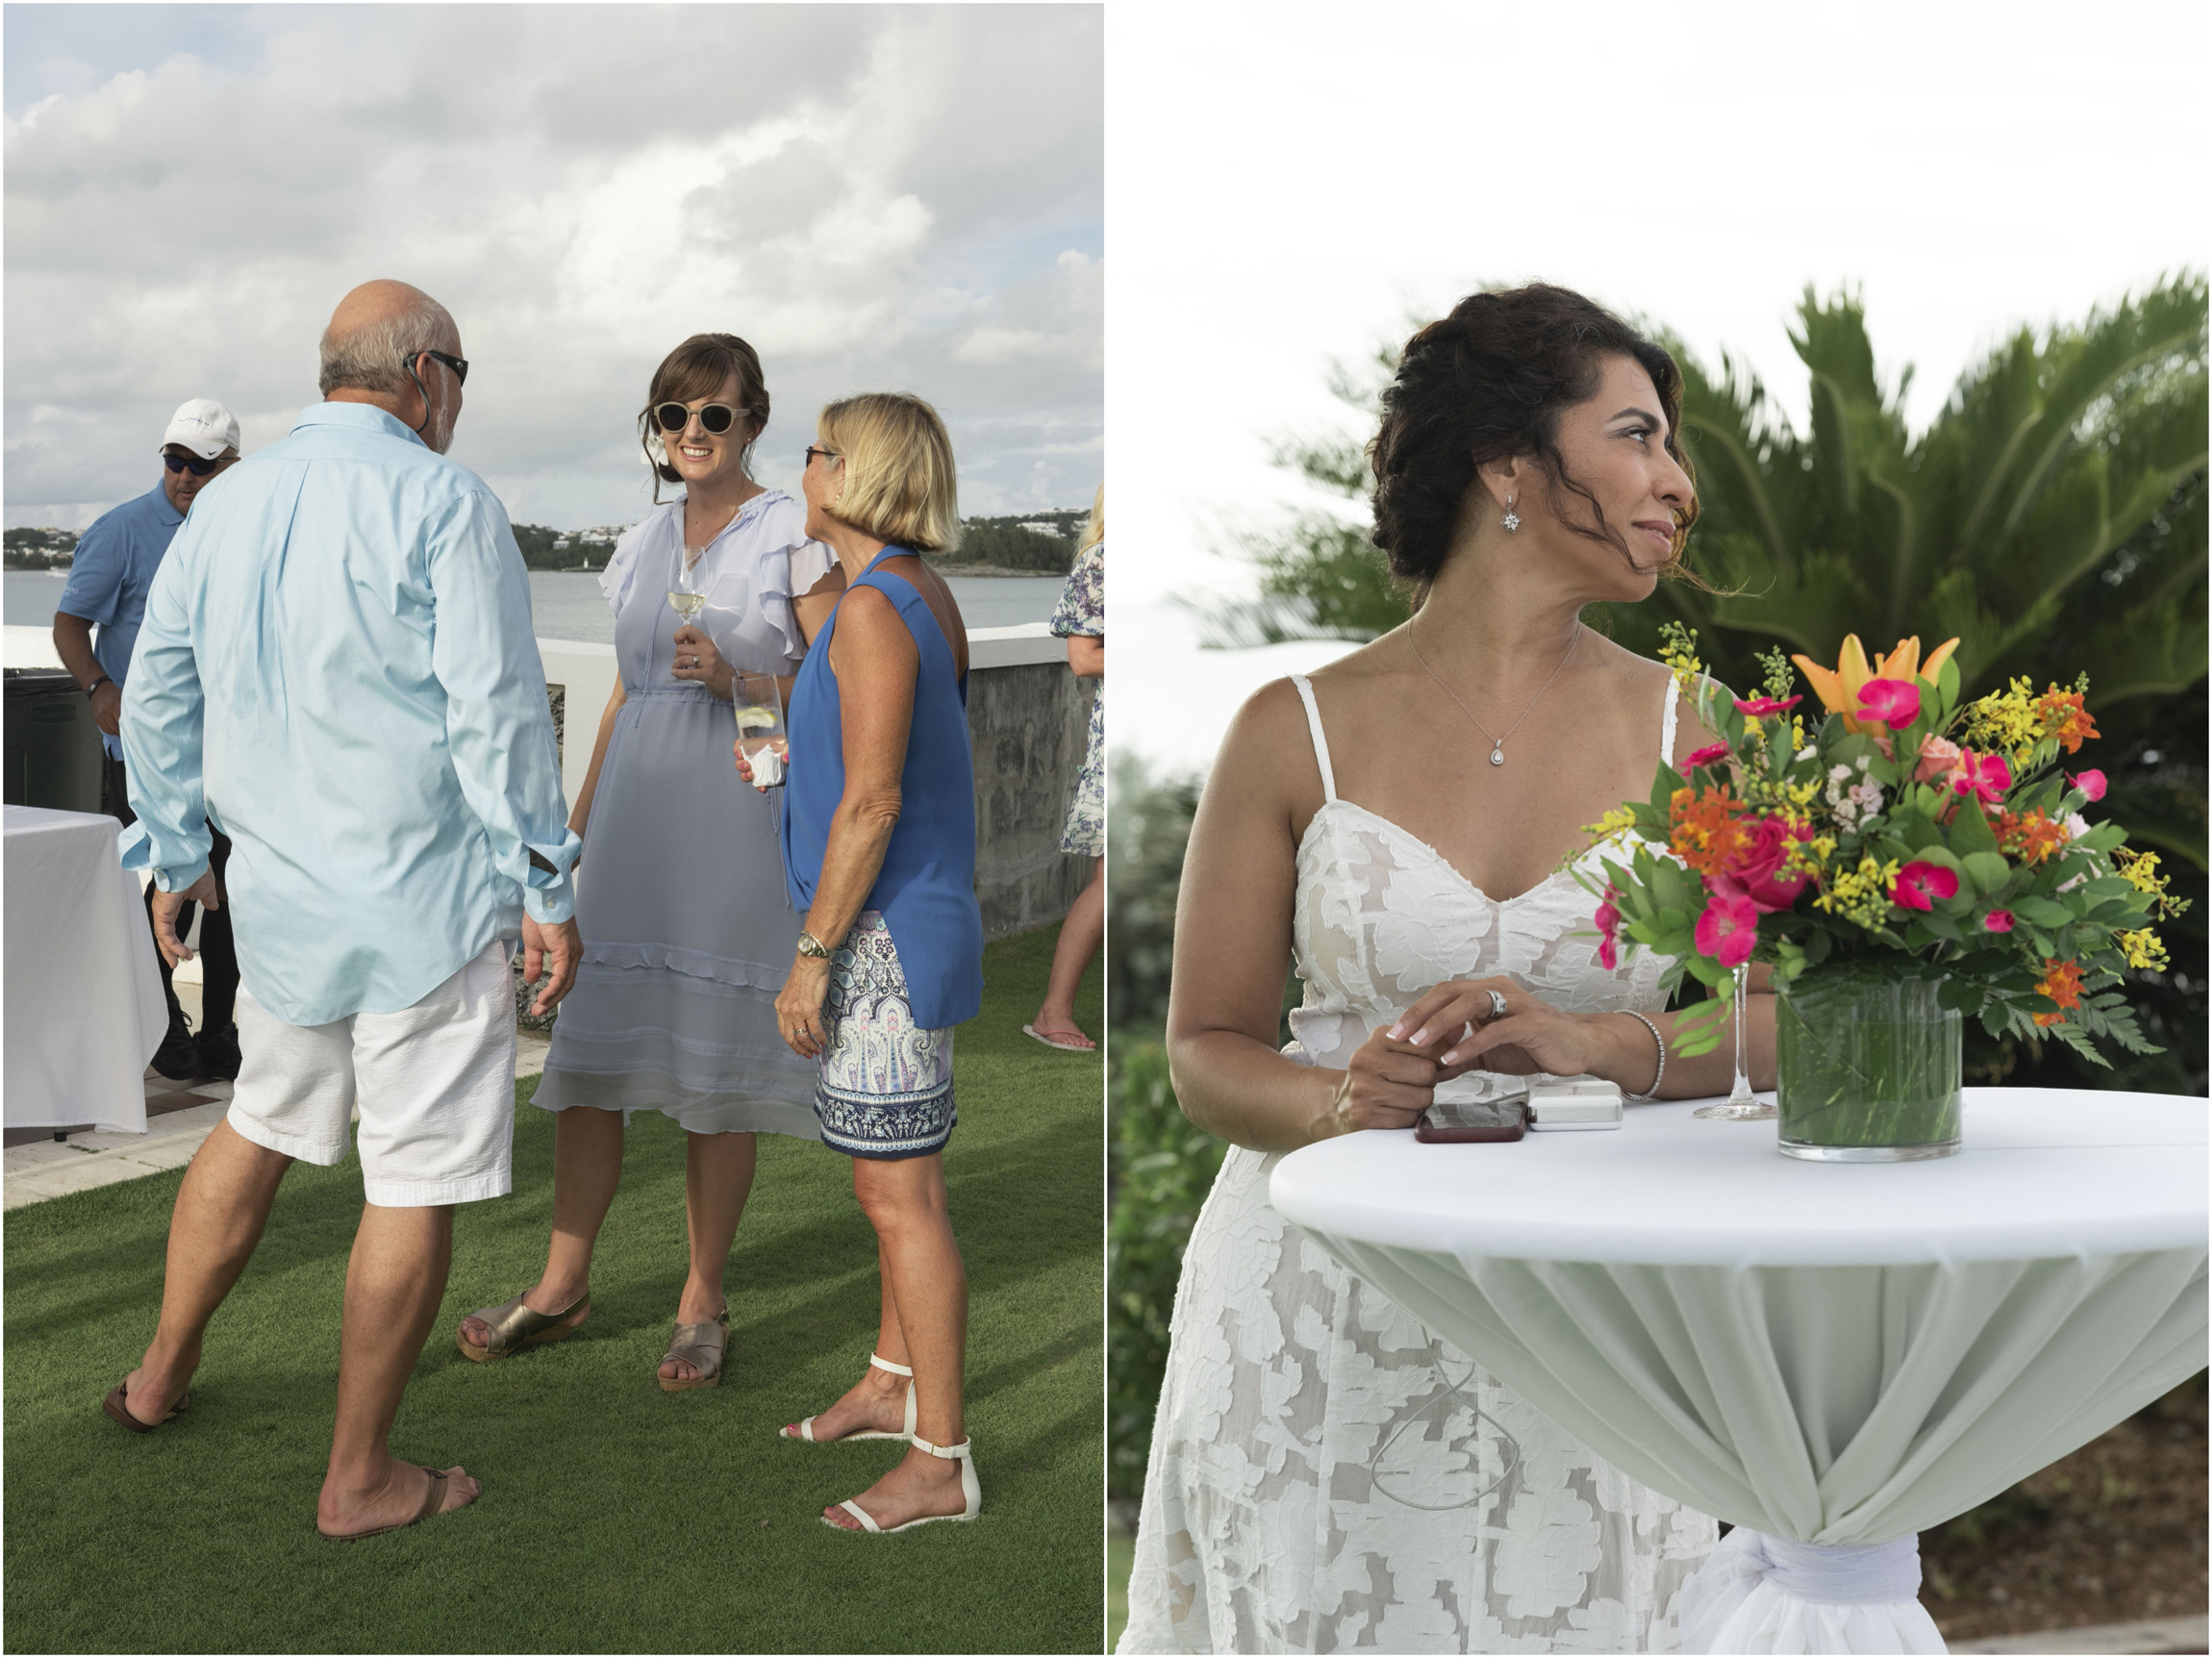 ©FianderFoto_Bermuda_Wedding_Photographer_Long_Island_Bermuda_Nancy_Ray_053.jpg